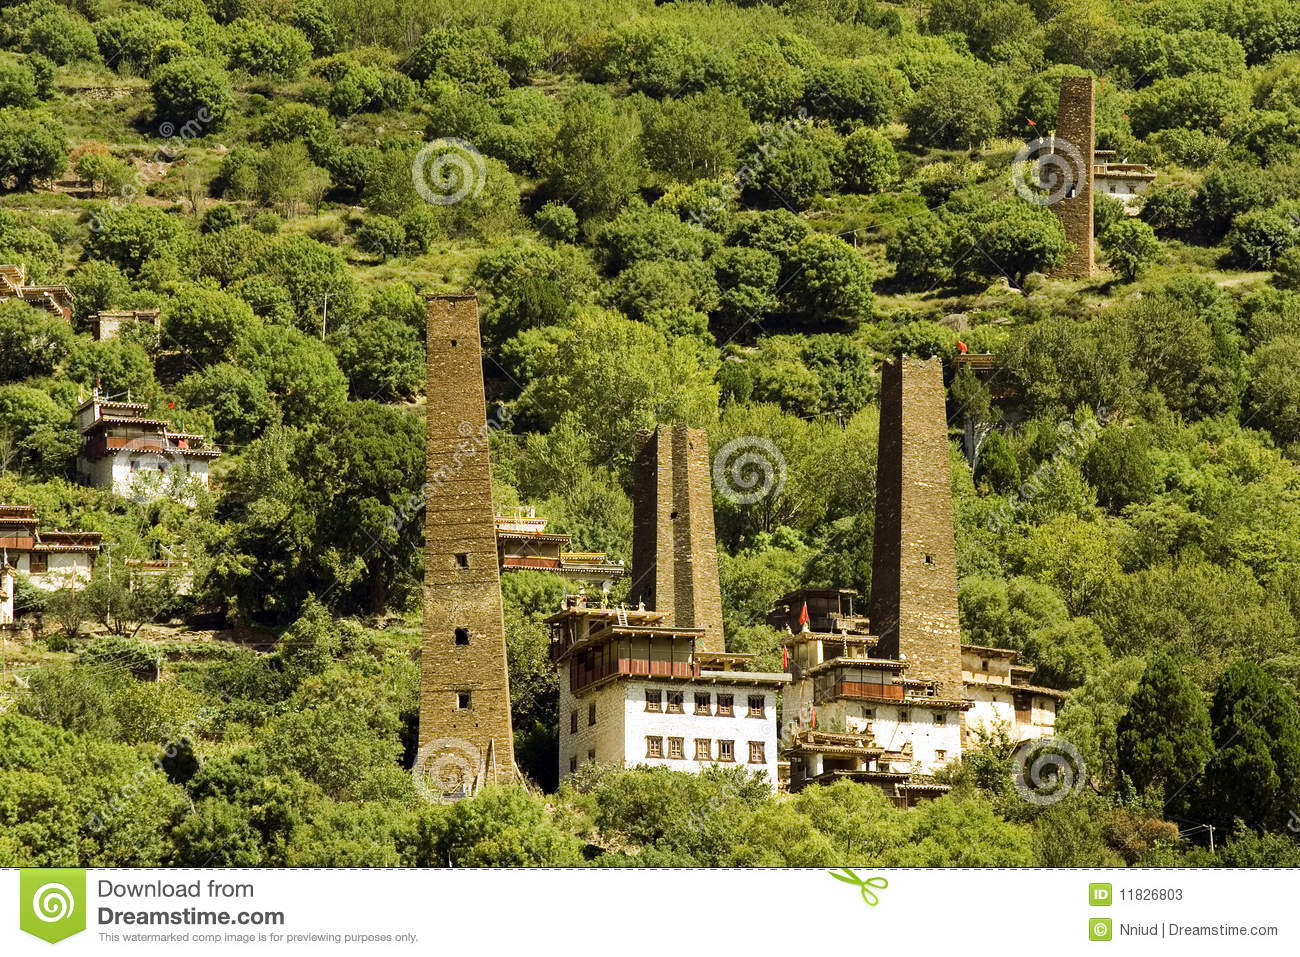 Danba, sichuan, china, towers and villages